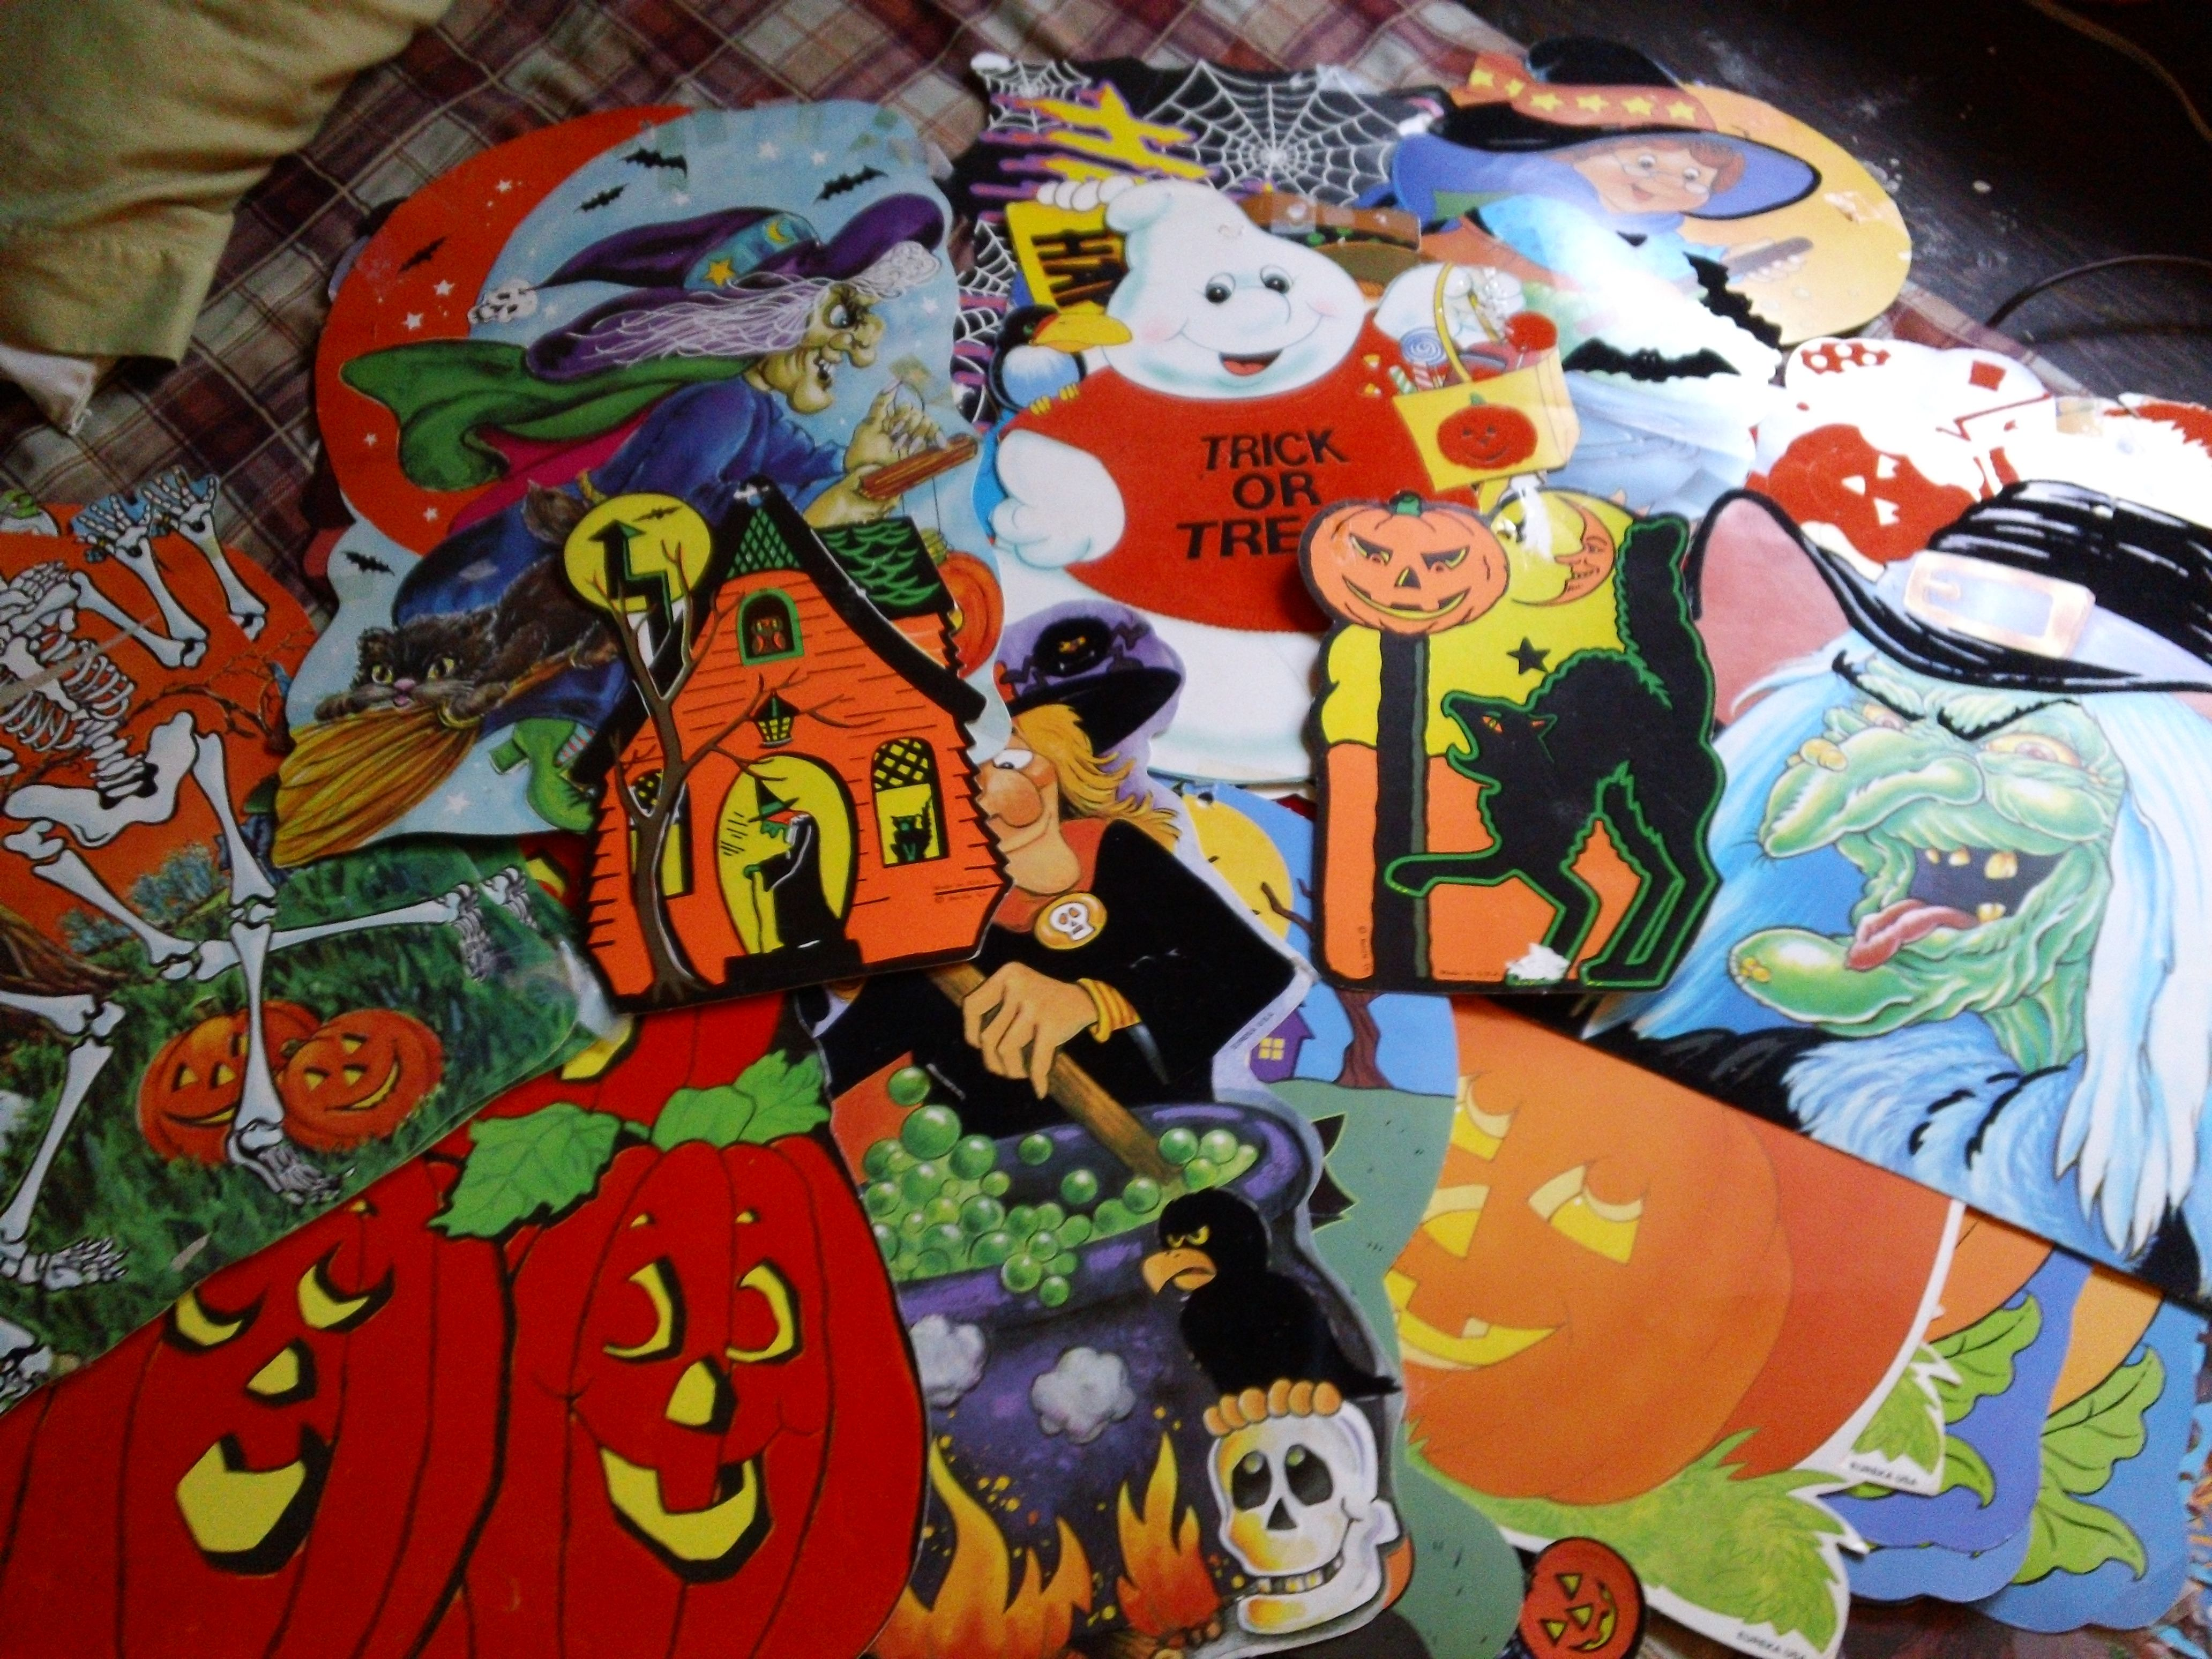 Vintage halloween decorations - Love This Collection Paper Halloweenhalloween Decorationscut